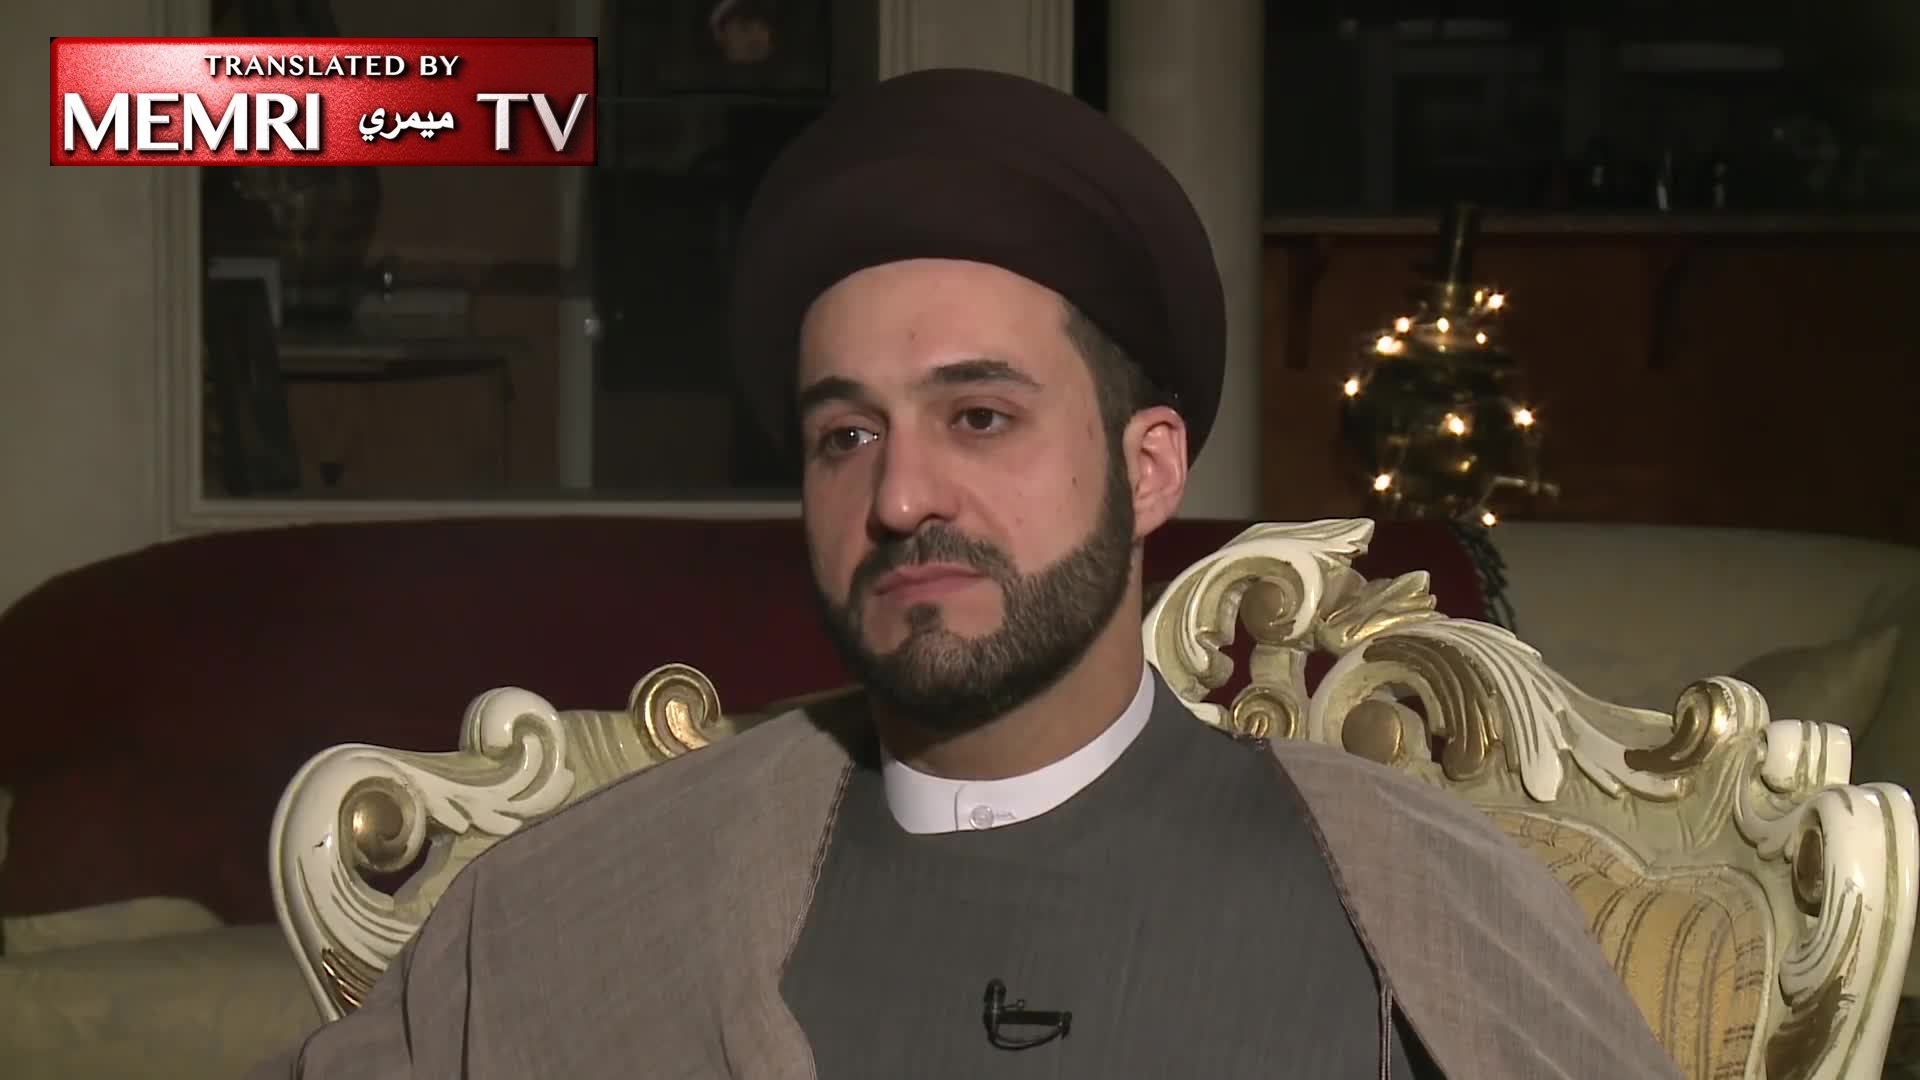 Shiite Iraqi Scholar Jawad Al-Khoei: ISIS Violence Is Rooted in Islam; Christians Were the Owners of This Land, Muslims Their Guests